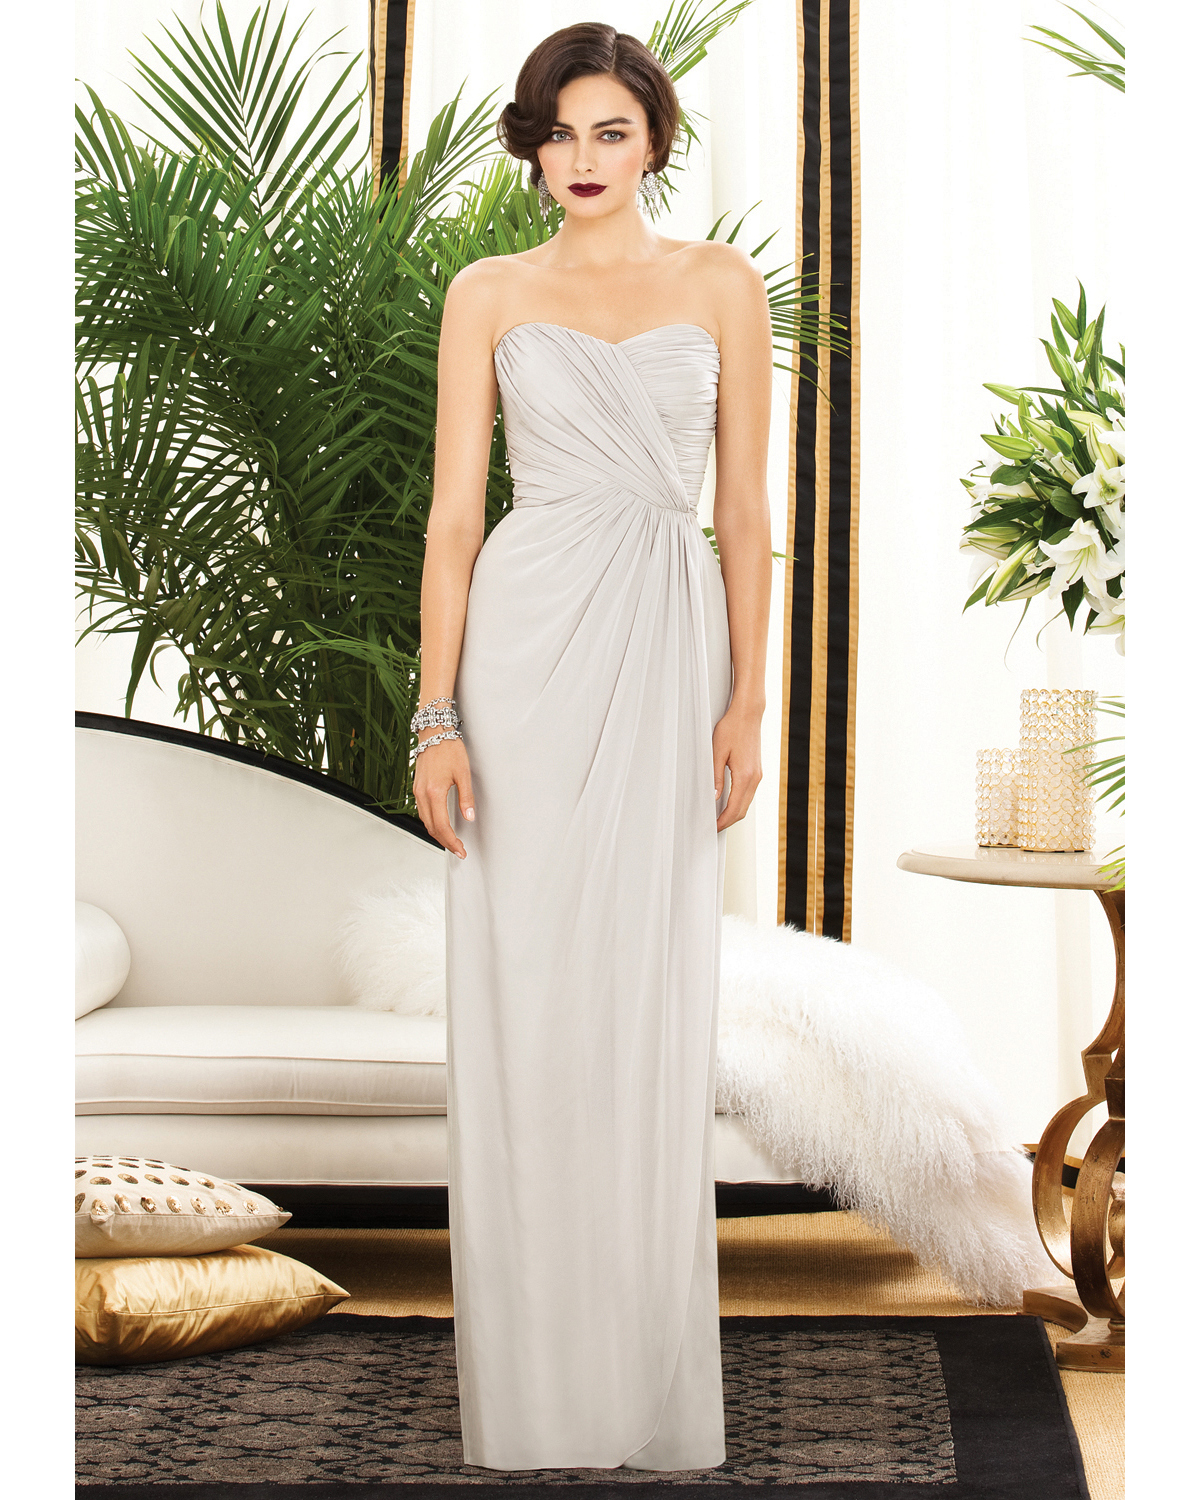 dessy-group-bridal-collection-bridesmaids-dresses-5.jpg